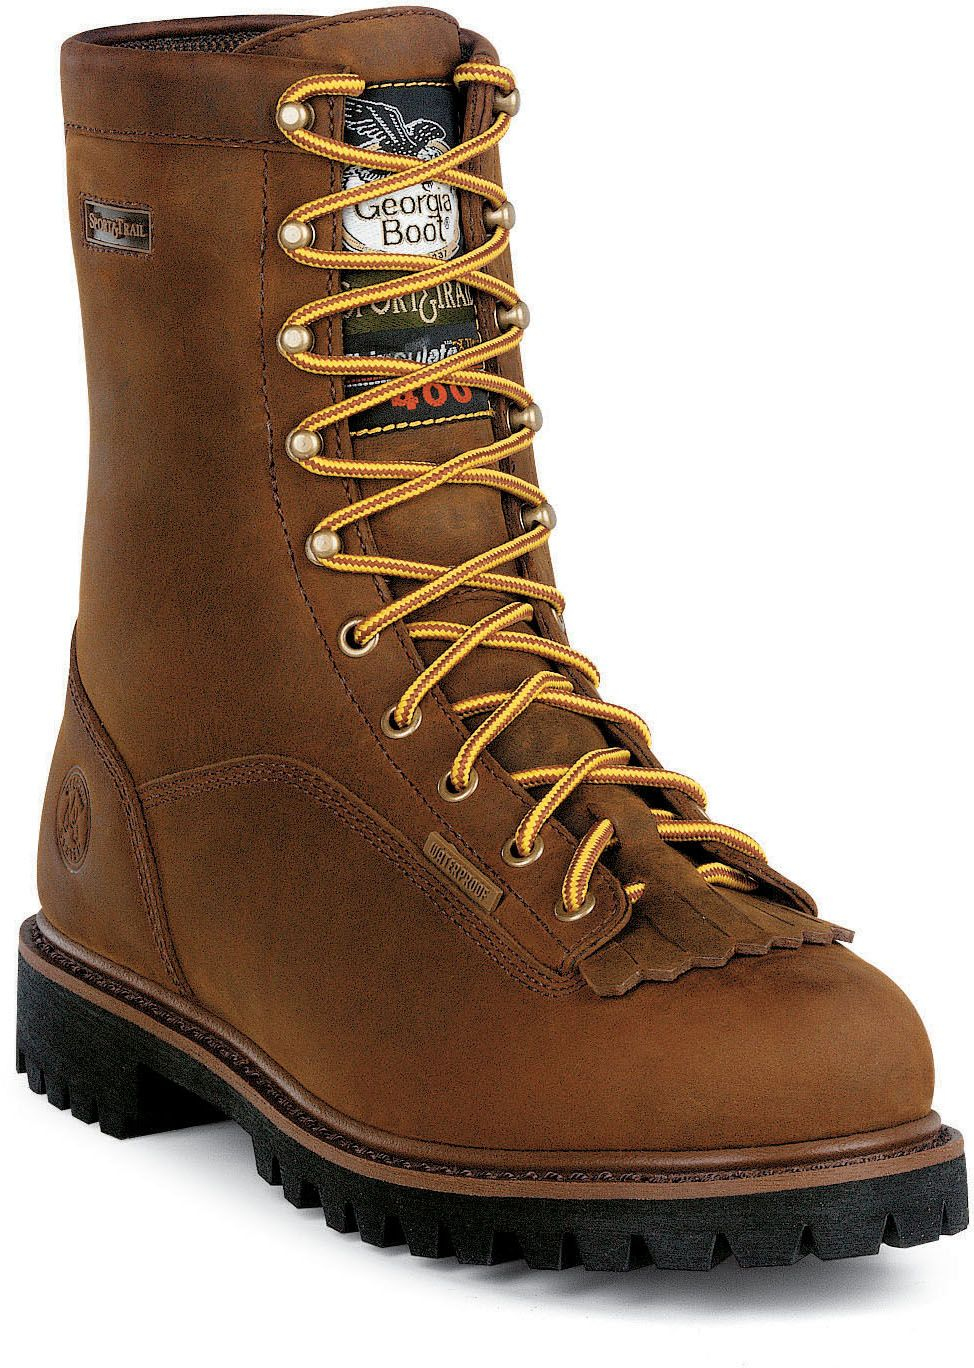 5c6668e5e97 Georgia Boot: Men's 8